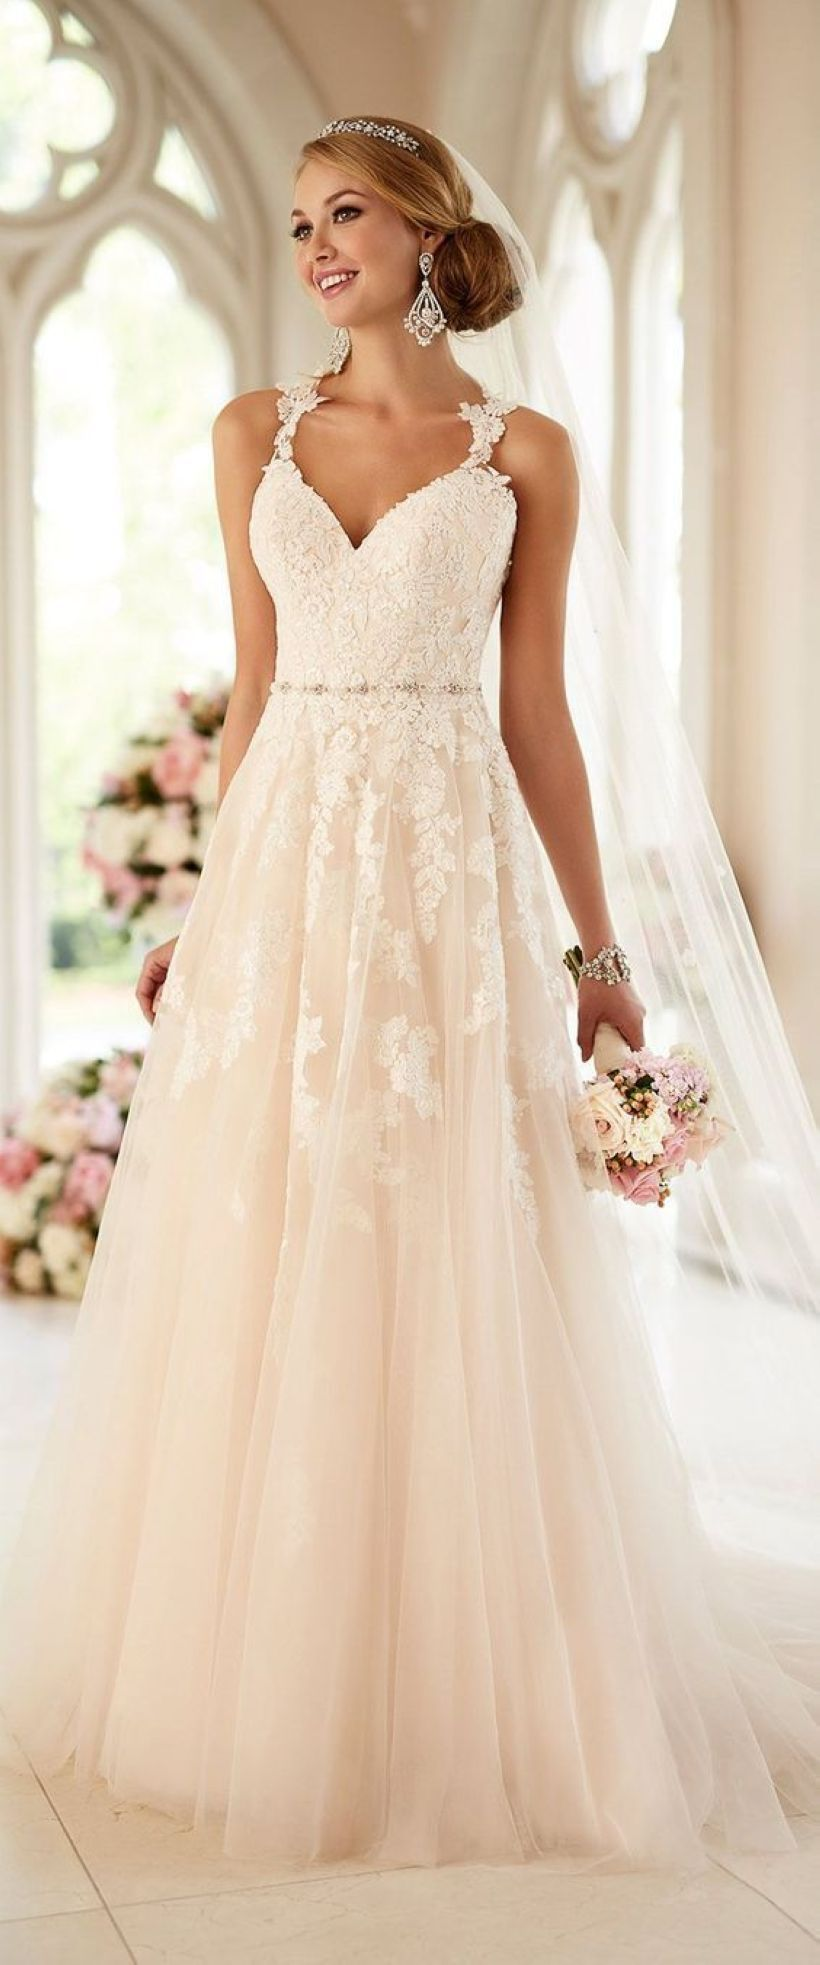 outstanding christmas wedding dress ideas western wedding dress